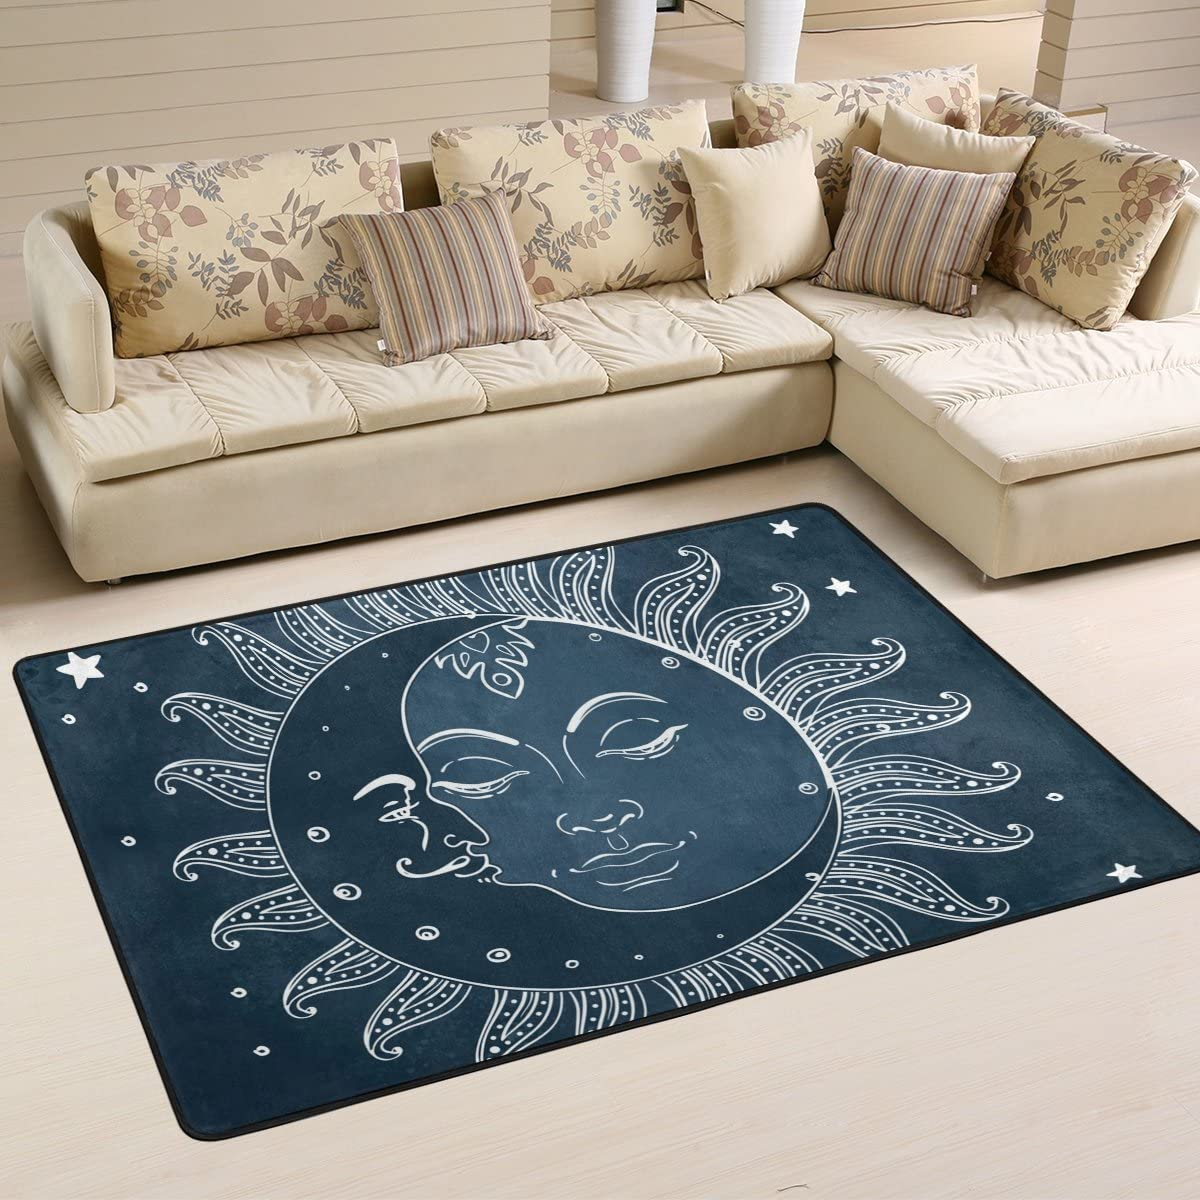 LAVOVO Celestial Sun and Moon Pattern Area Rug Rugs Non-Slip Floor Mat Doormats for Living Room Bedroom 72 x 48 inches